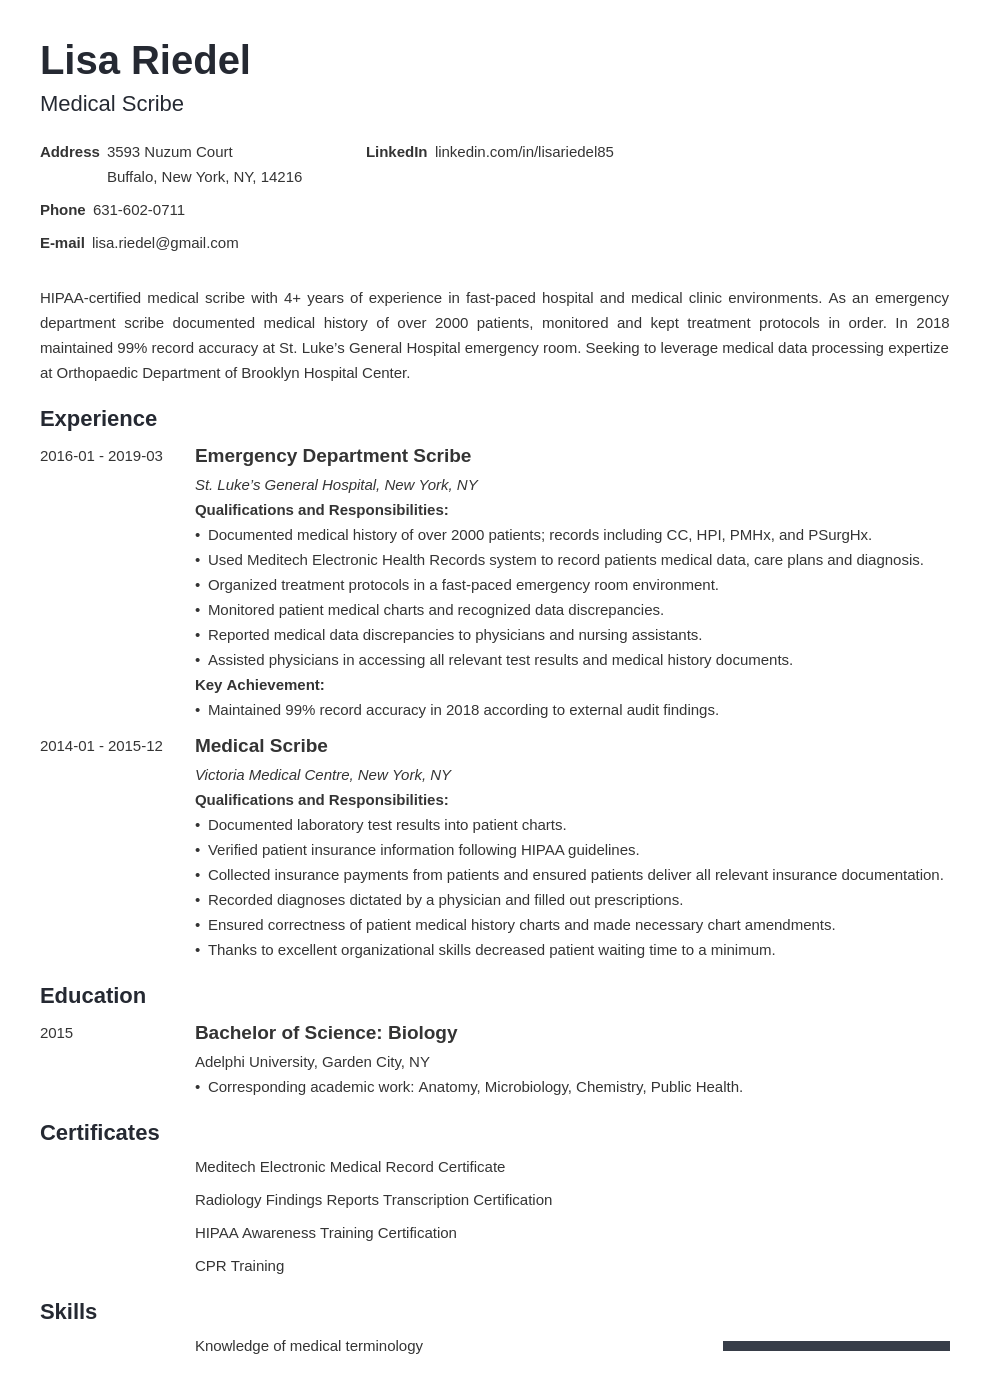 Medical Scribe Resume Example Template Minimo Medical Scribe Resume Examples Job Resume Examples